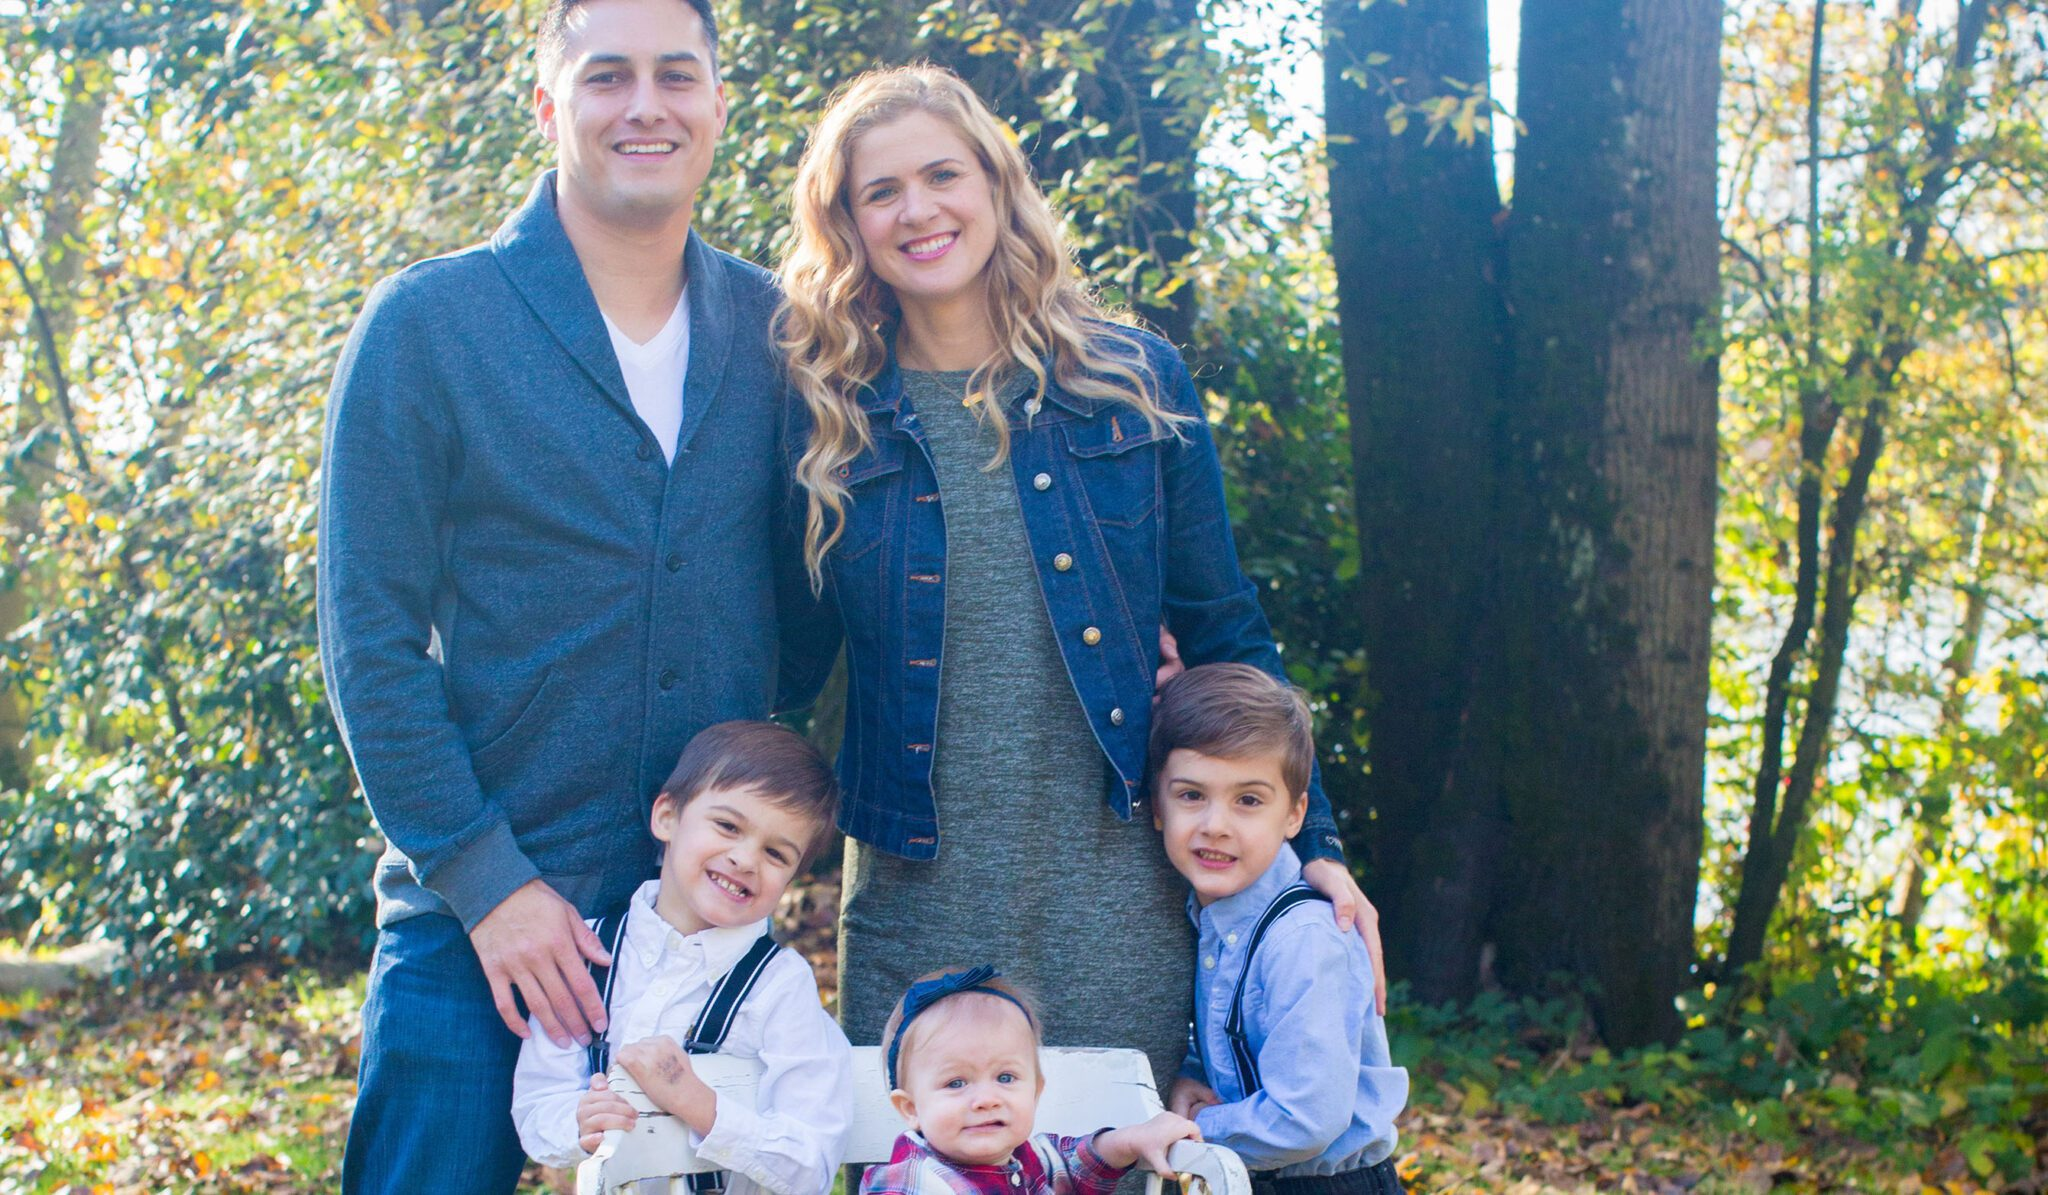 family with three children through IVF